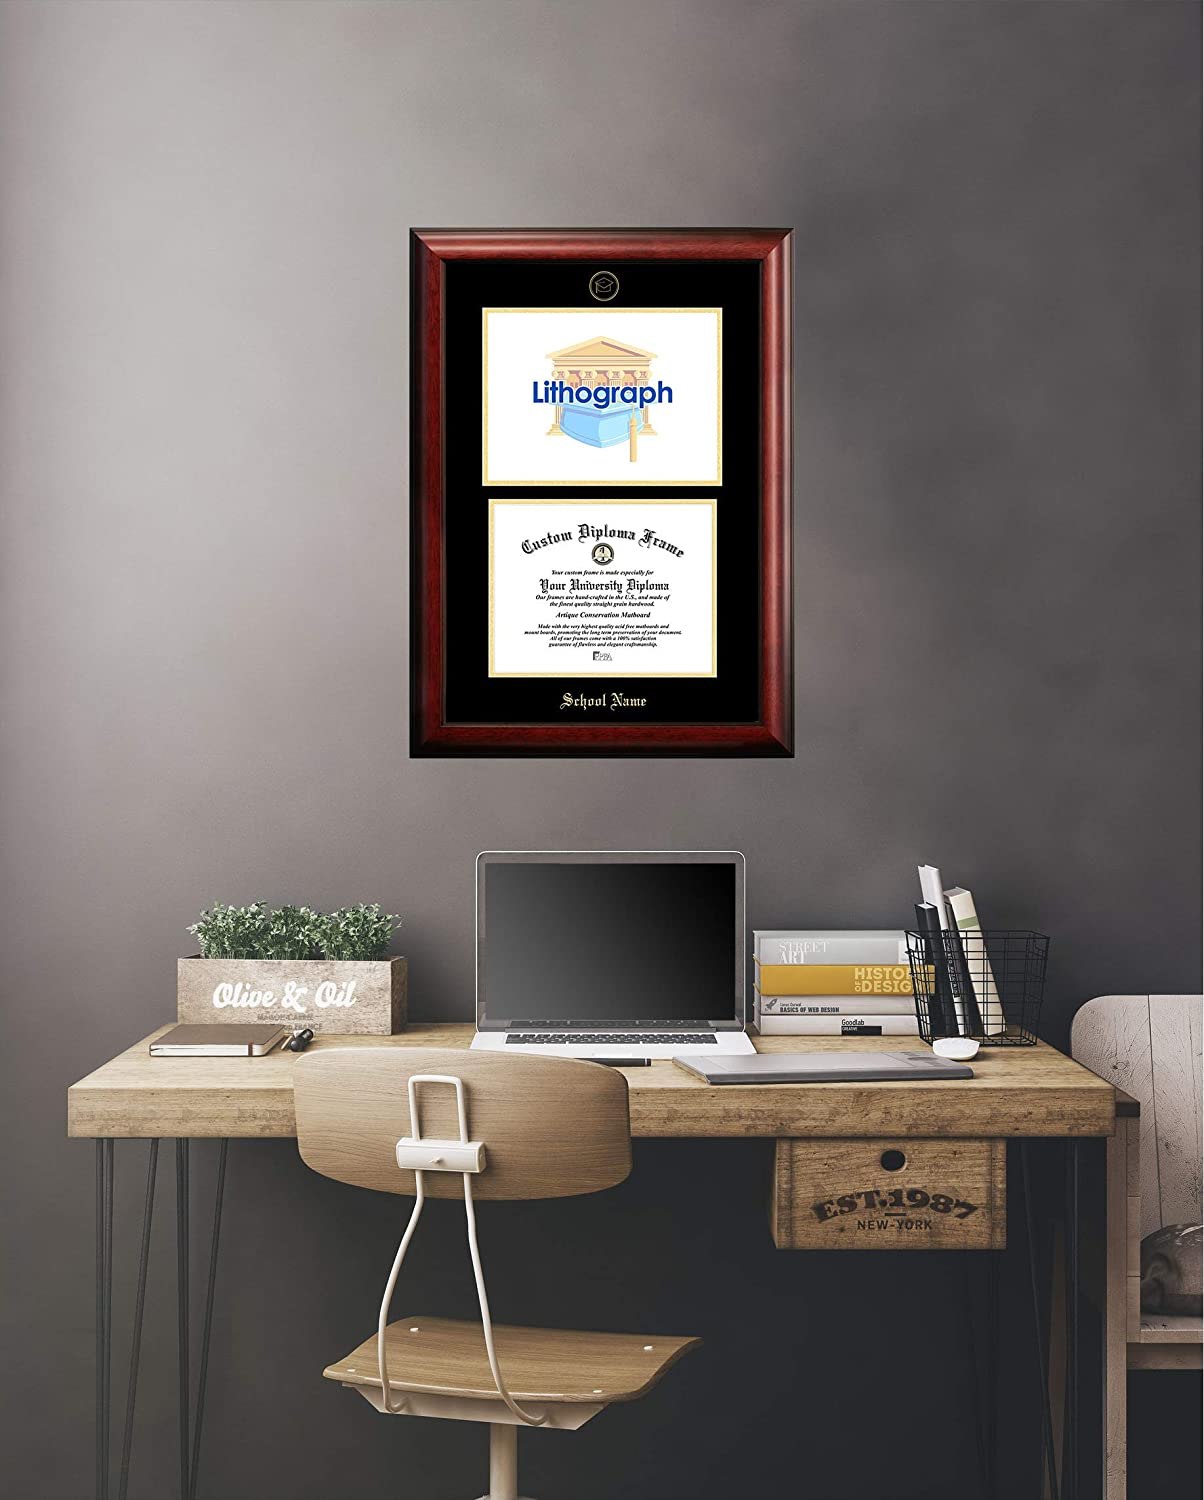 11.5 x 16 Gold Campus Images FL994LGED University of Florida Embossed Diploma Frame with Lithograph Print